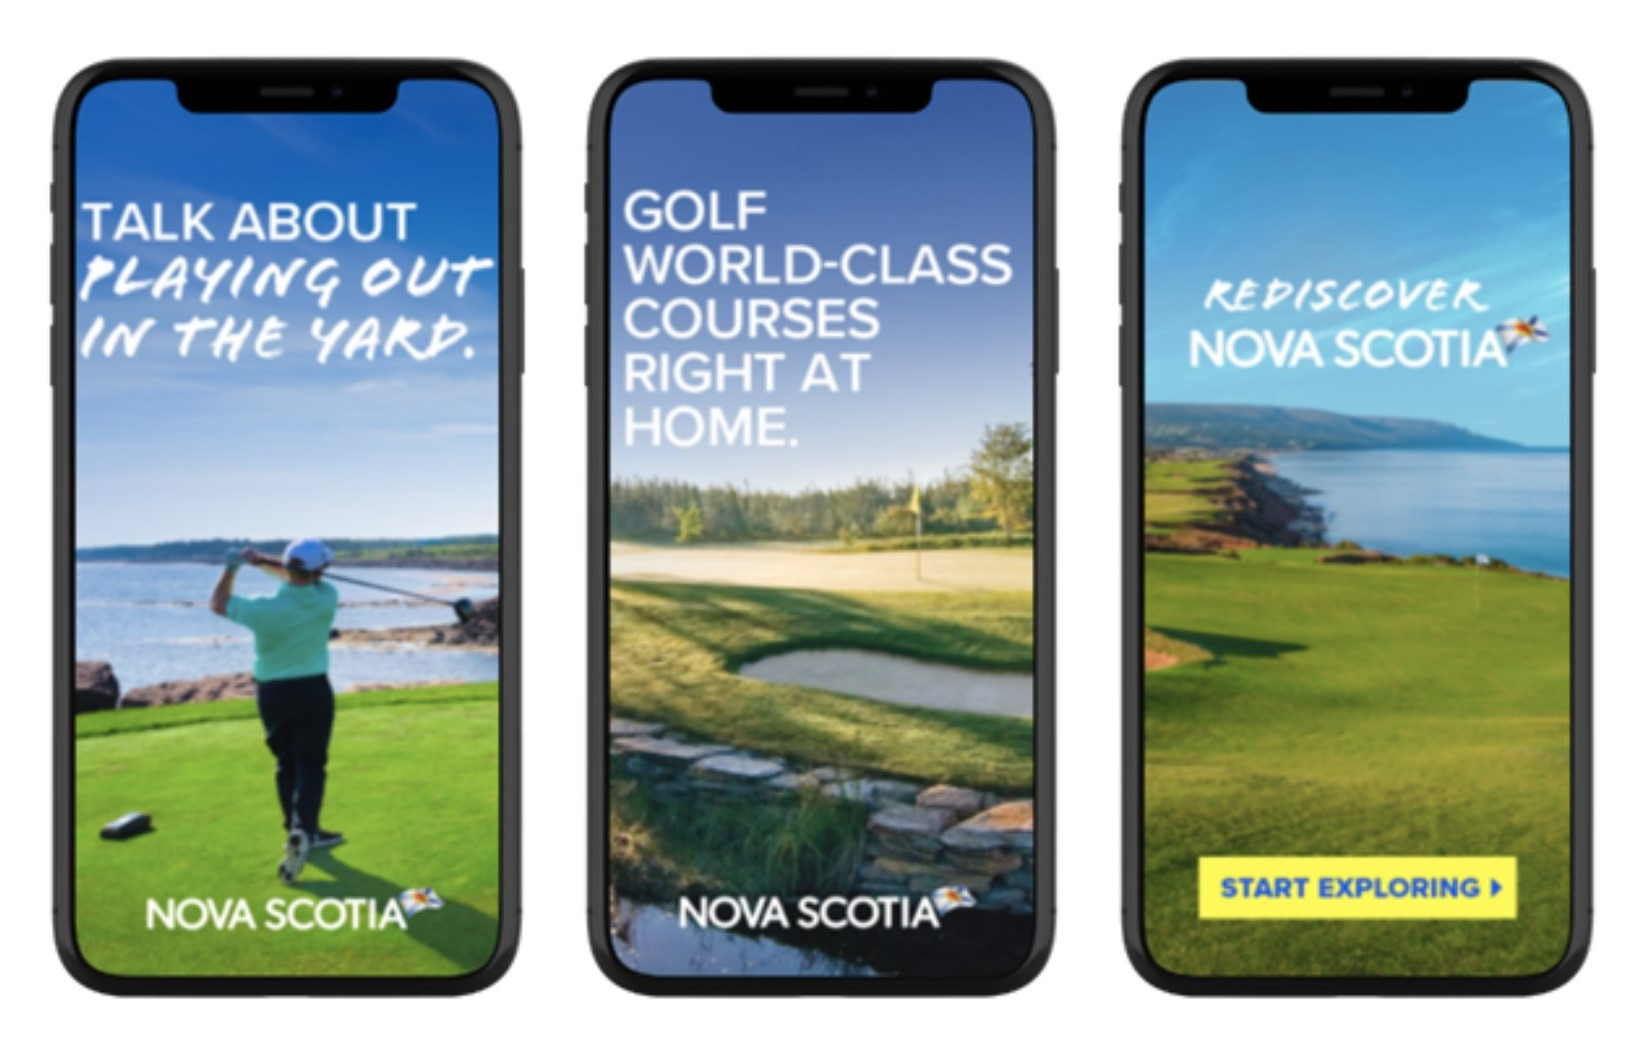 Ads featuring golf on mobile phones.